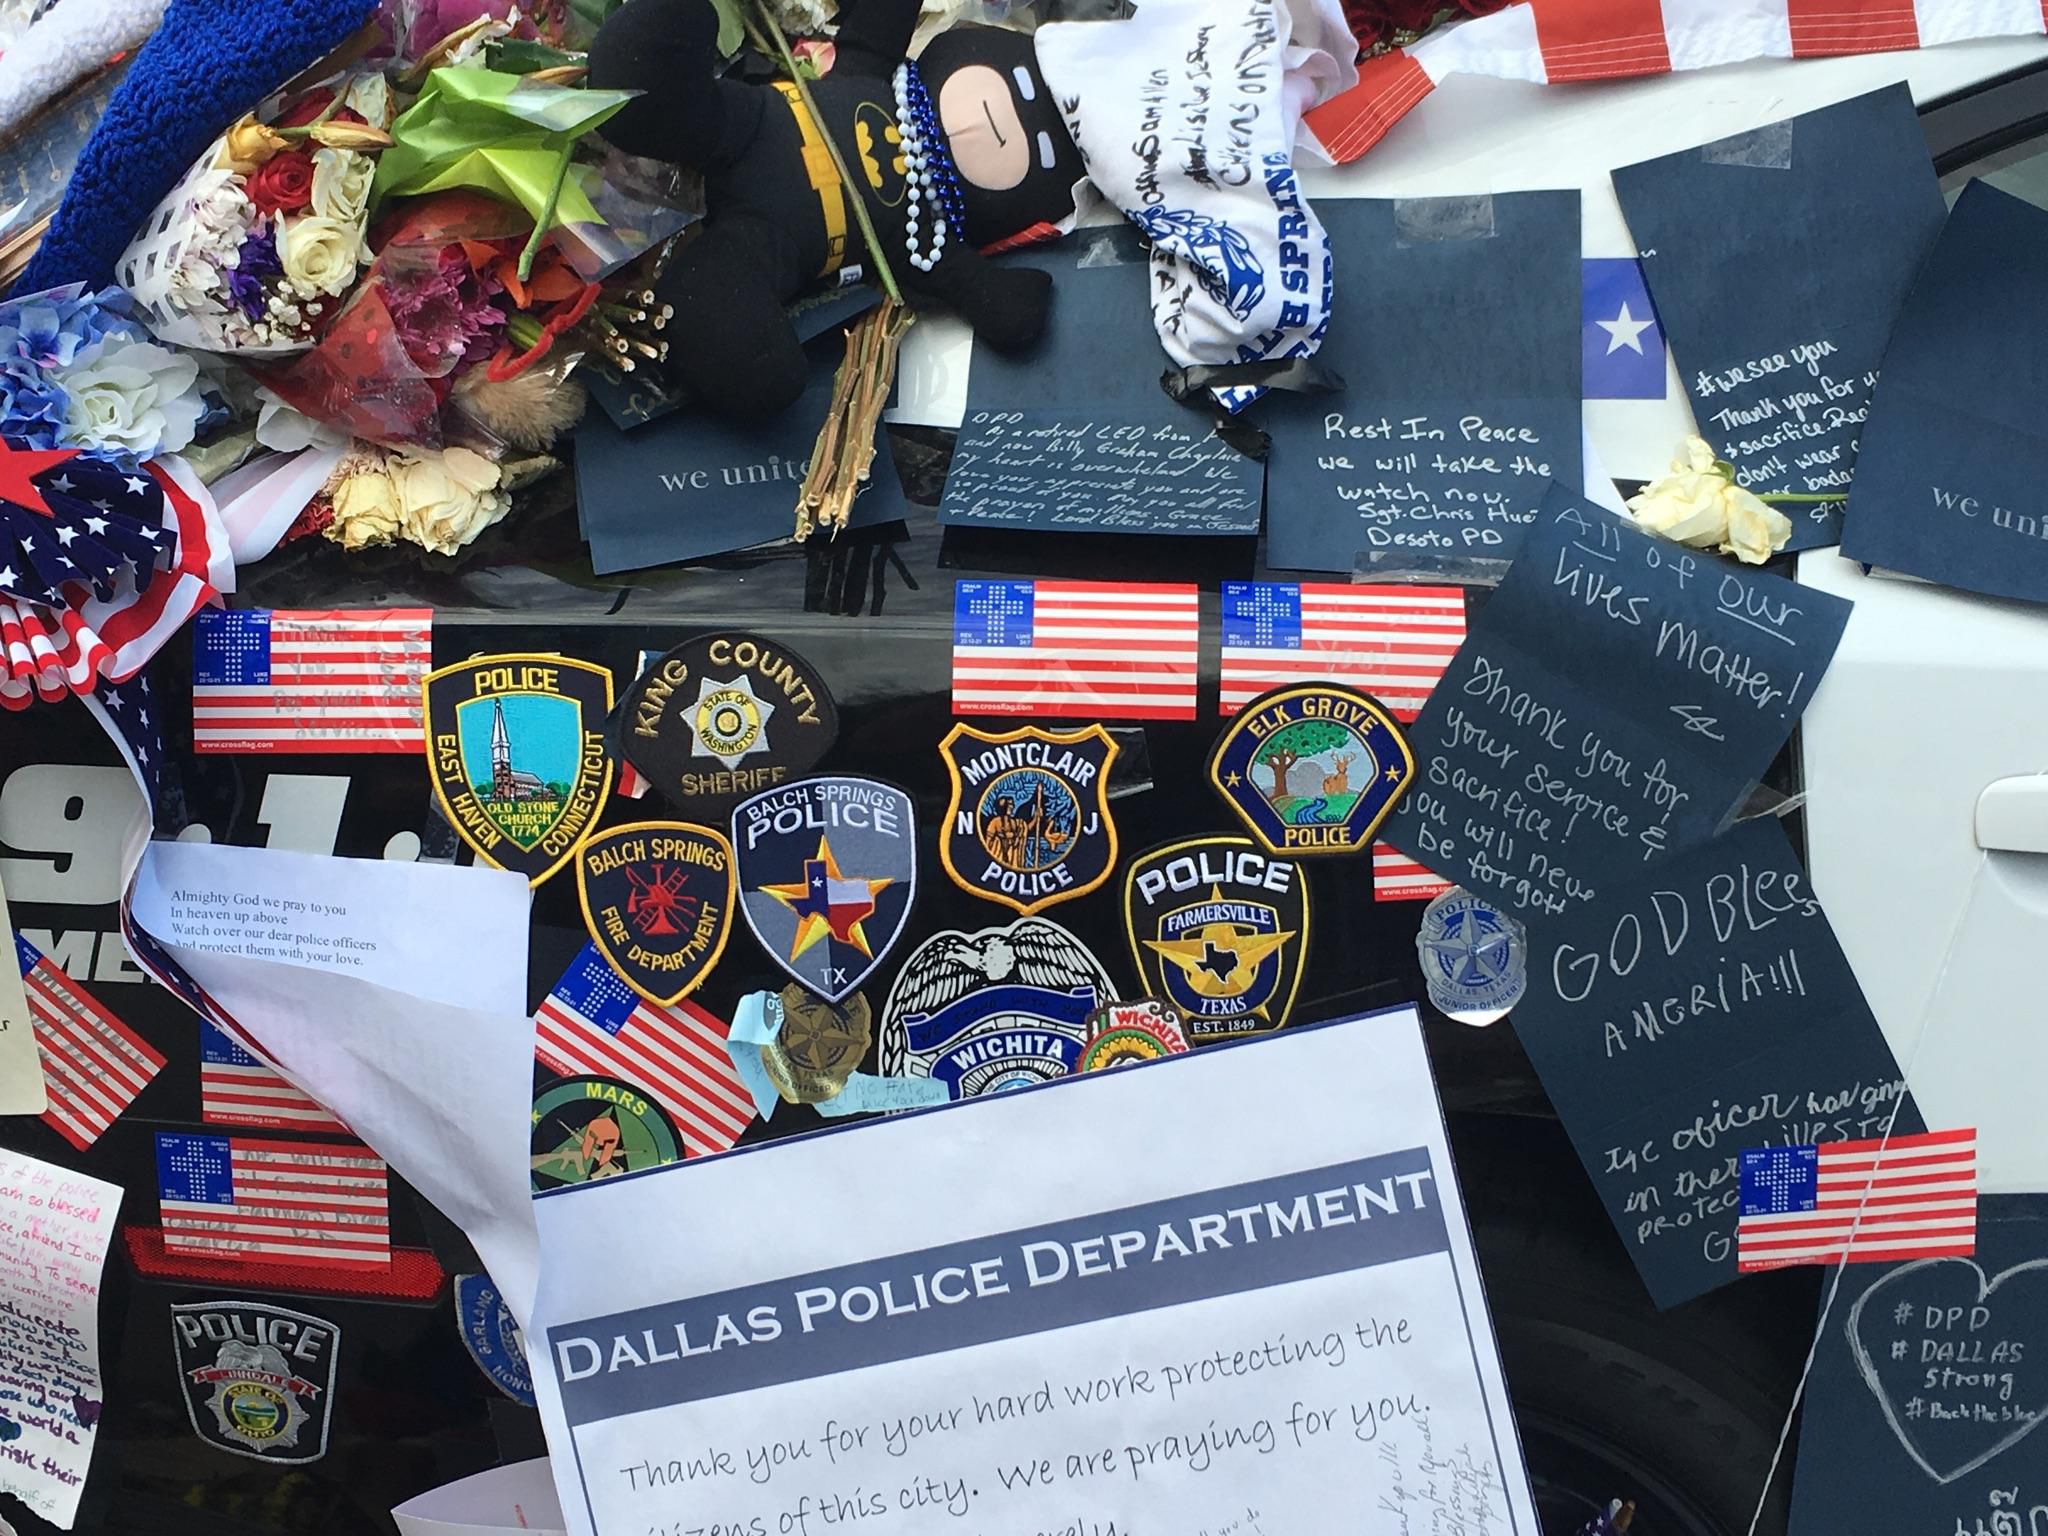 045c209875400d3edcdd_police-patches-dallas.jpg